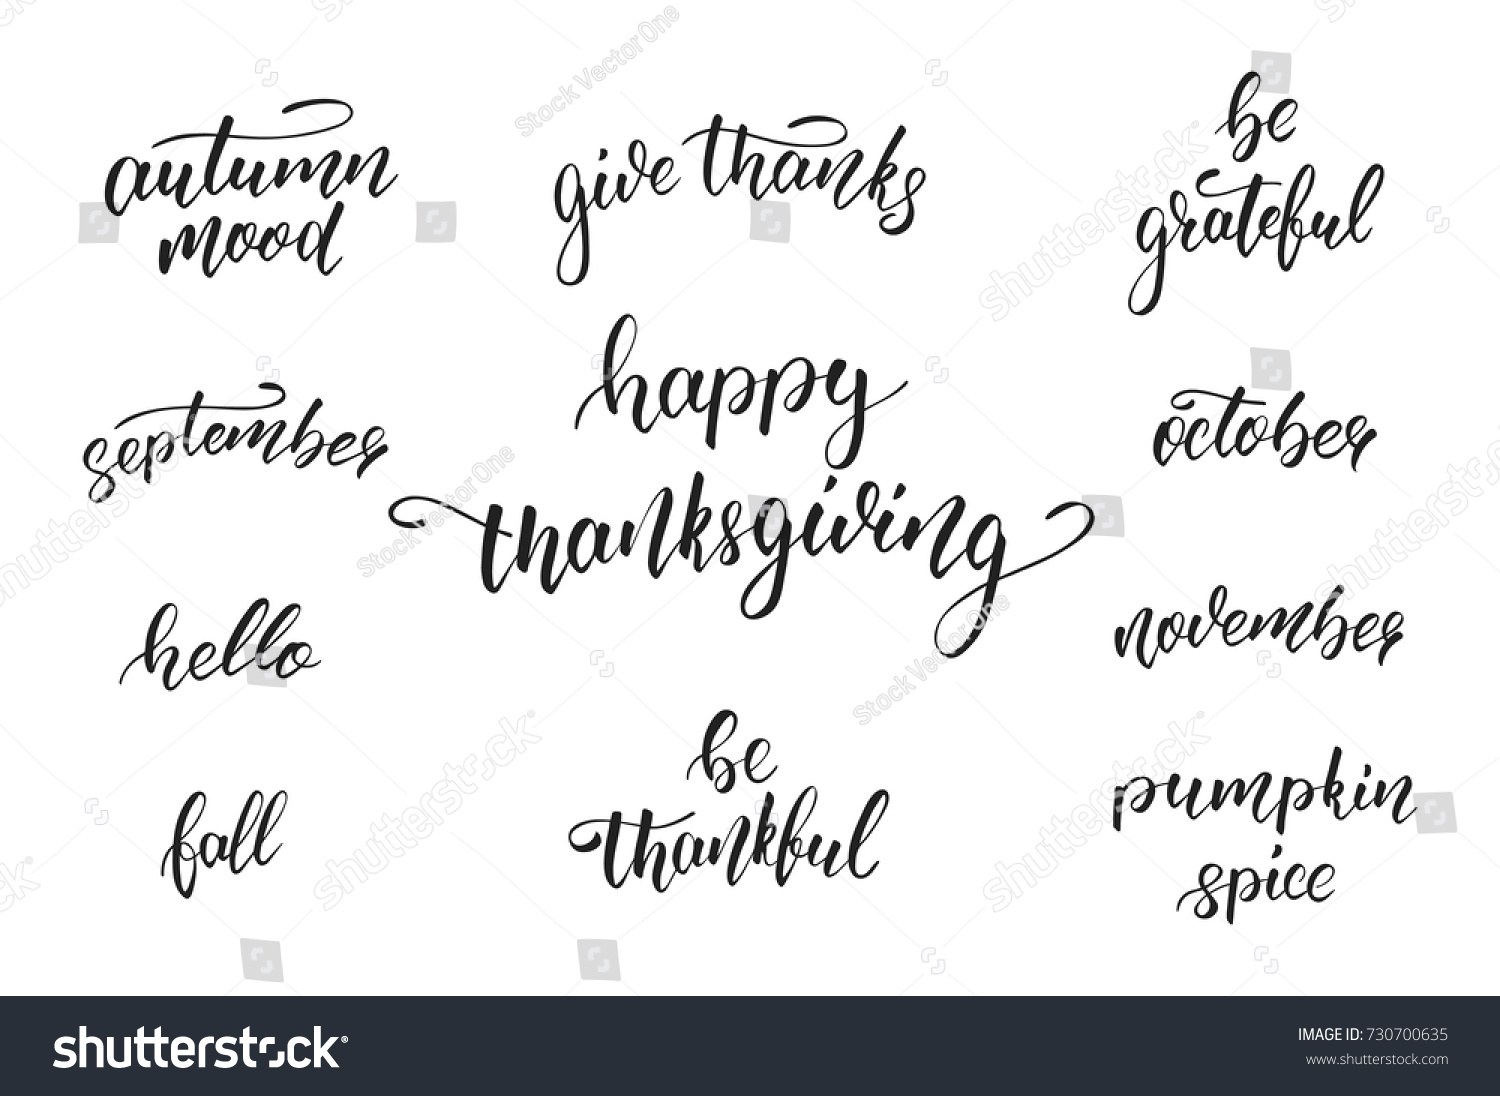 Quotes Calligraphy Thanksgiving Day Calligraphy Quotes Thanksgiving Day Stock Vector